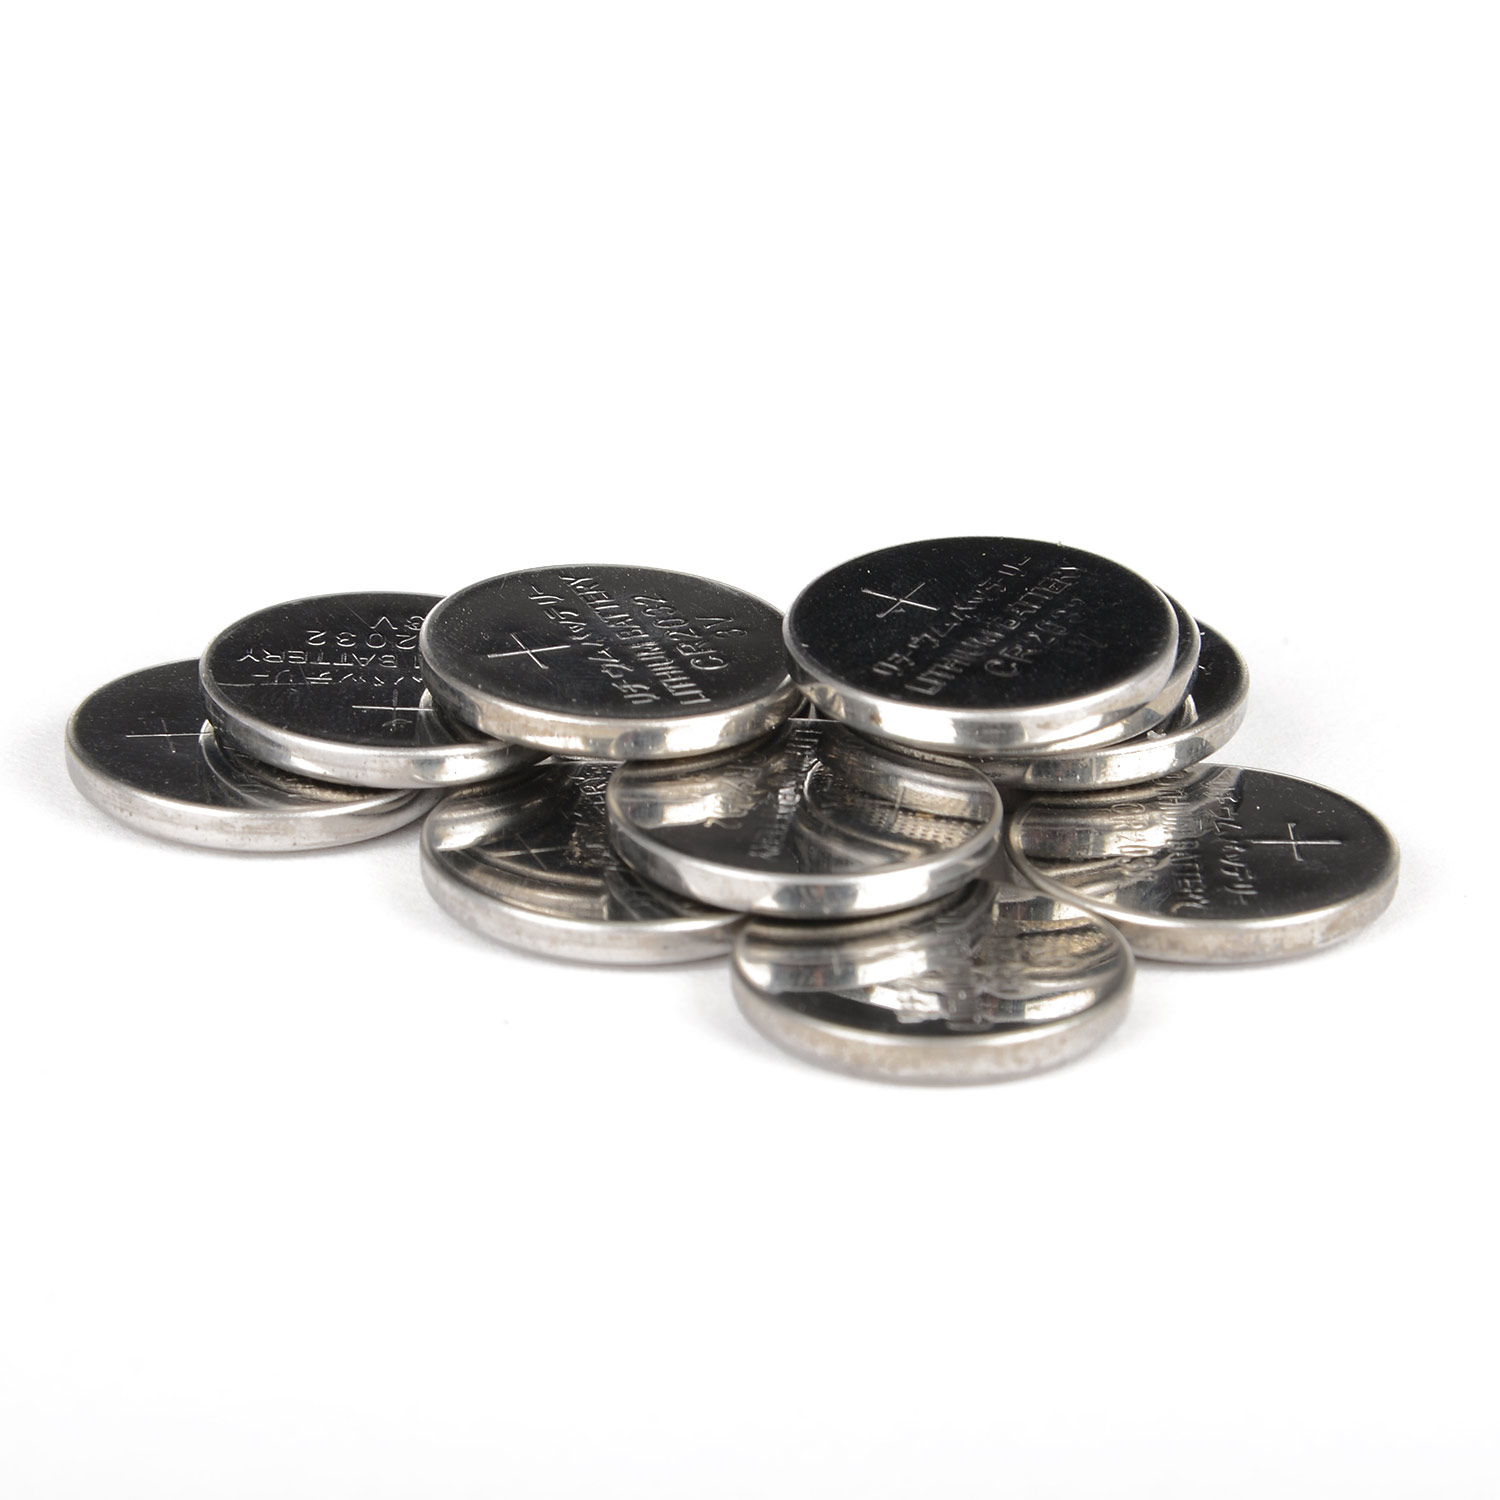 Coin Cell Batteries - 16 Pack